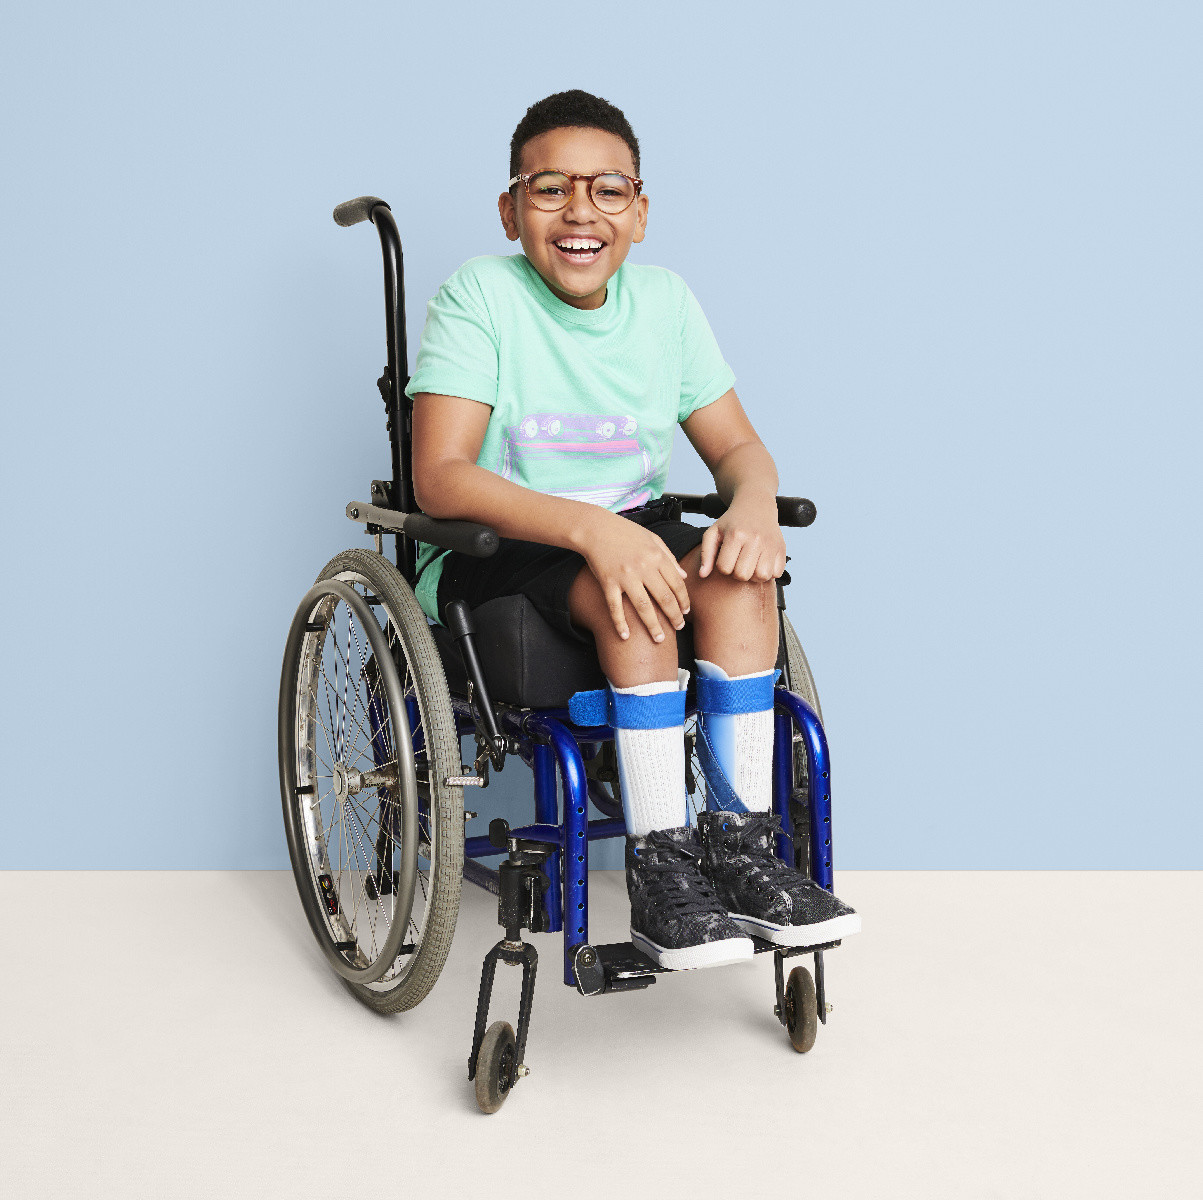 Target's Cat & Jack children's fashion line includes adaptive clothing.